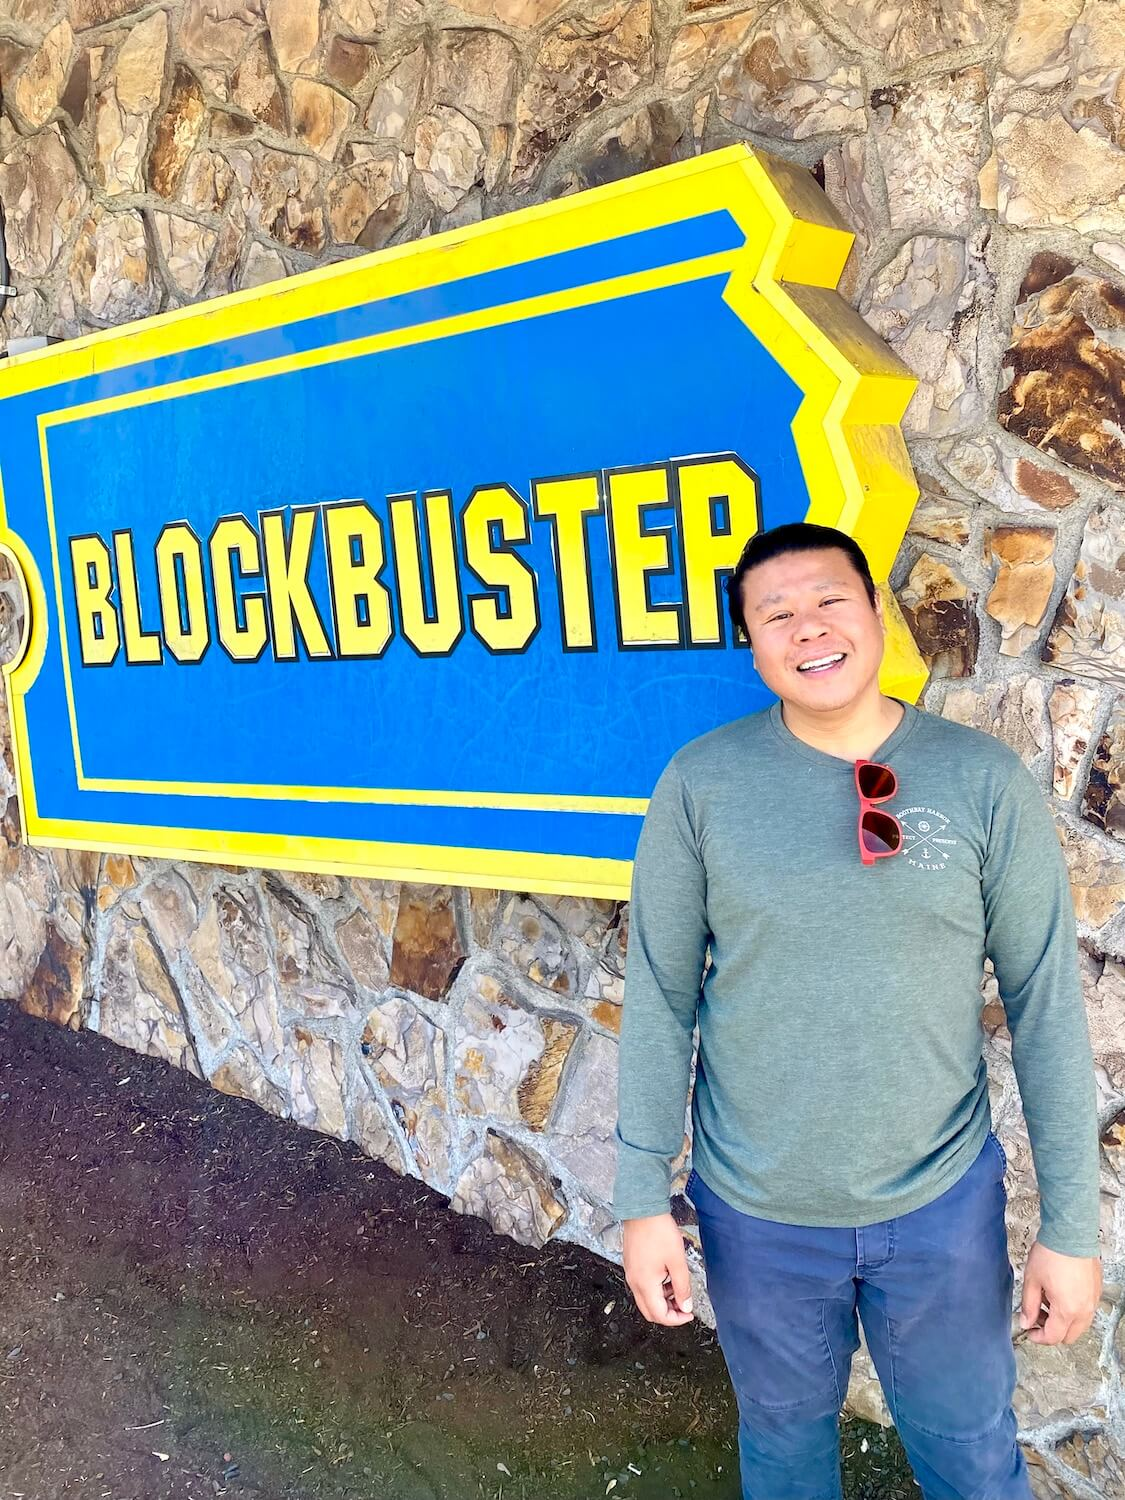 A fun thing to do in Bend Oregon is visit the last Blockbuster Video still in operation.  Here, a man stands in front of the large logo on the front of the rock patchwork wall holding the giant blue sign with yellow highlights.